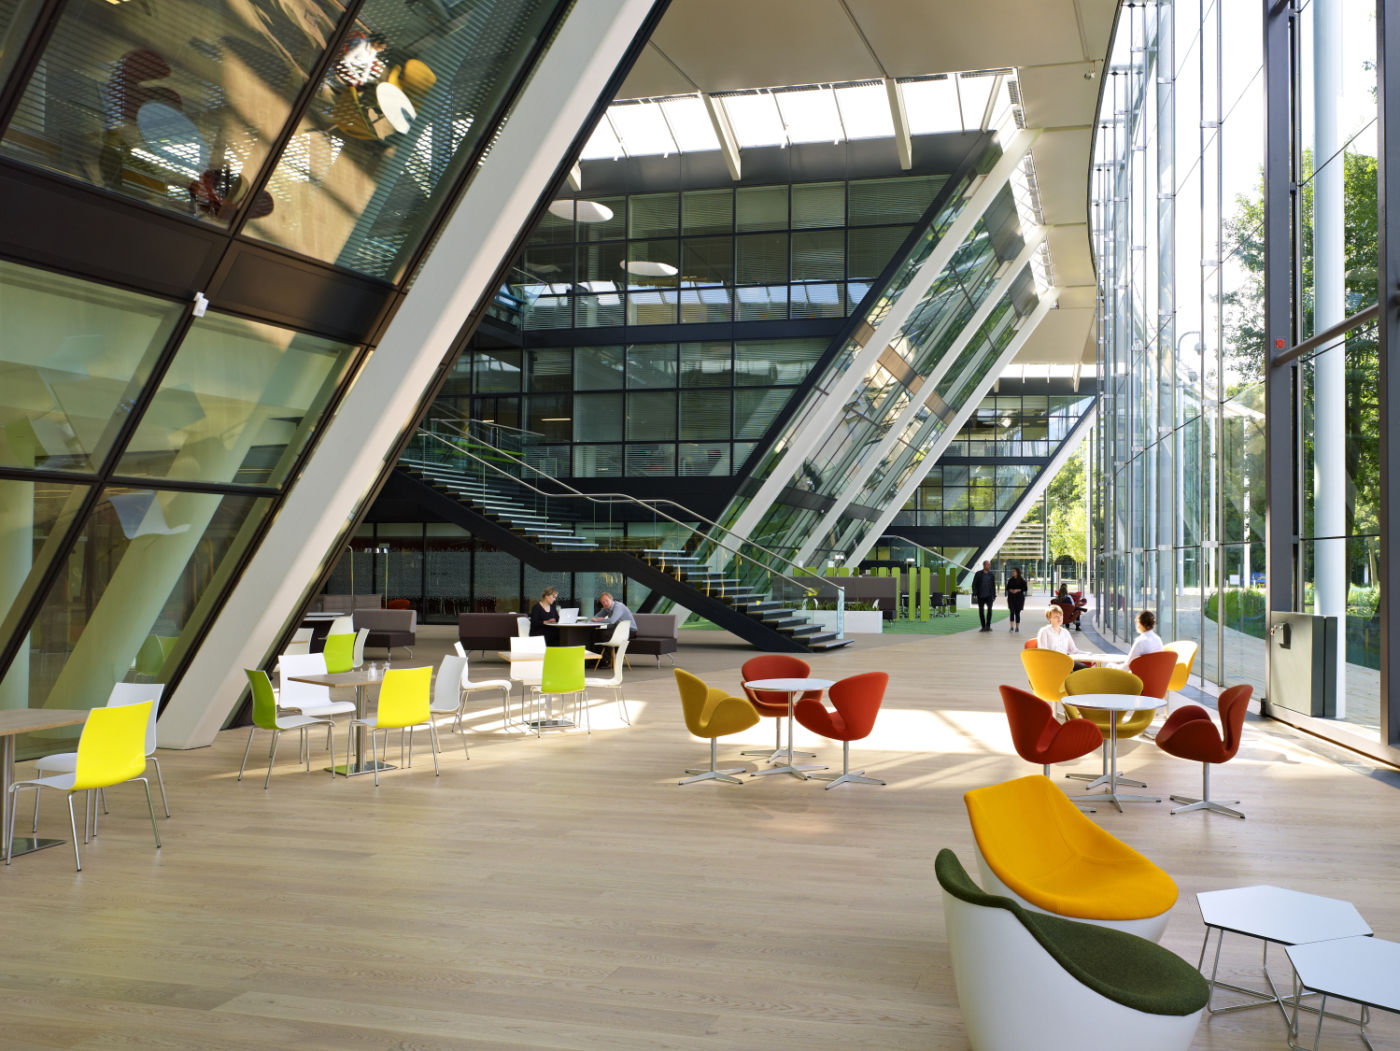 Large open plan building reception with colourful seating